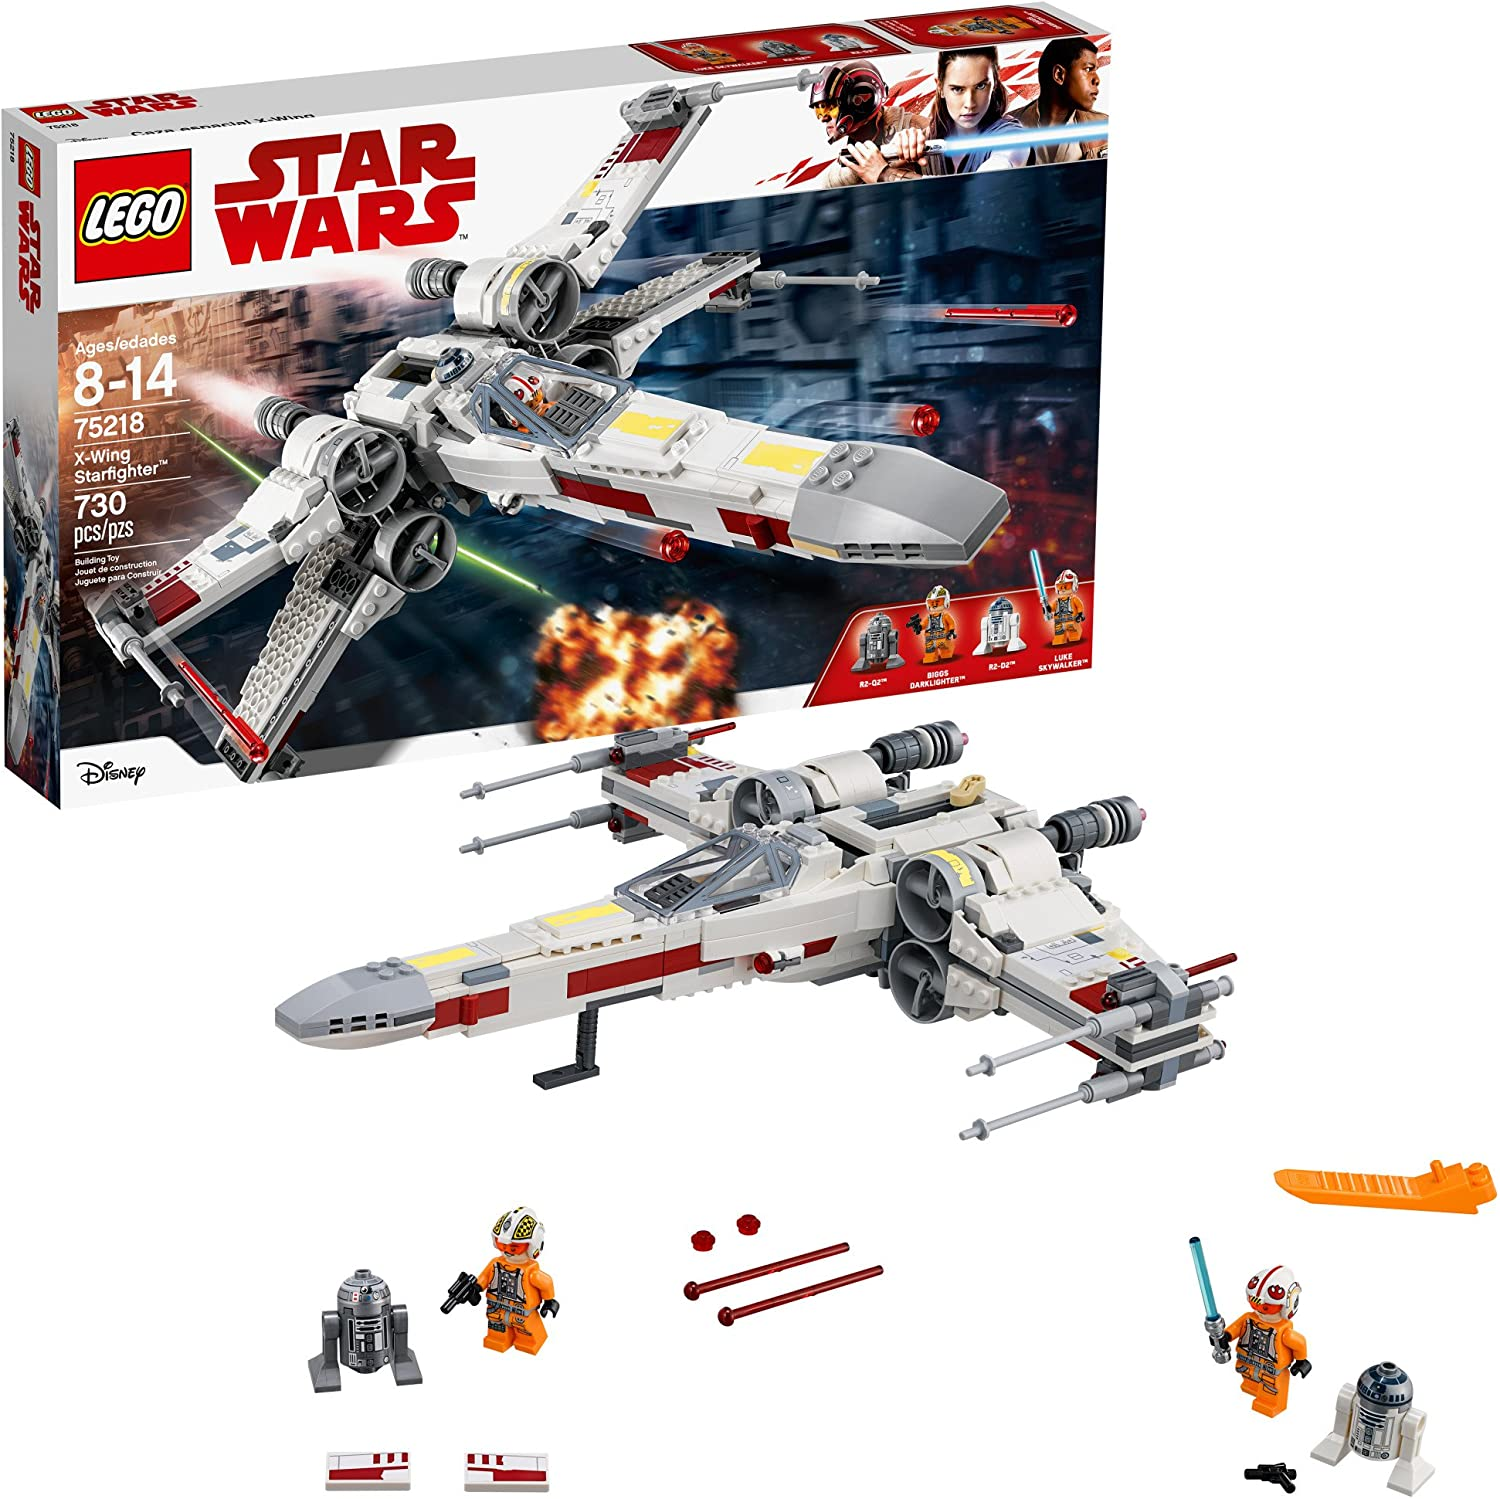 Discontinued by Manufacturer 731 Pieces LEGO Star Wars X-Wing Starfighter 75218 Star Wars Building Kit